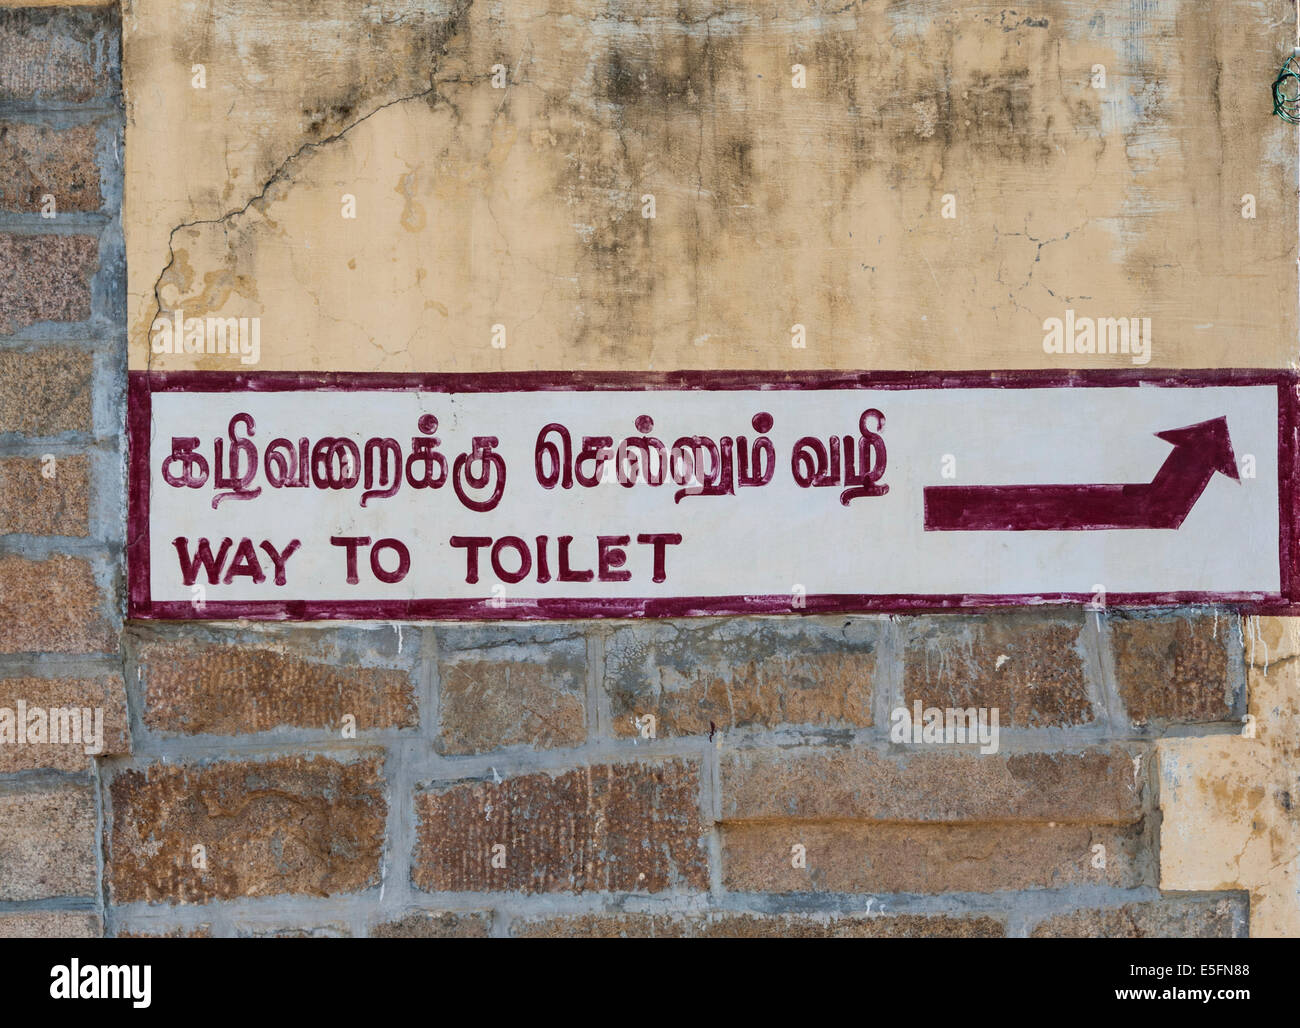 'Way to toilet', Indic scripts, Tamil Nadu, India - Stock Image